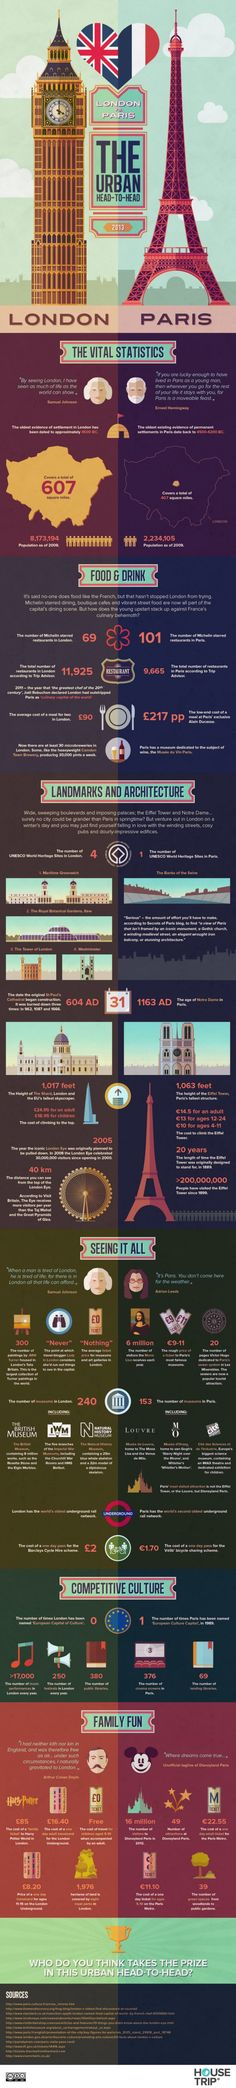 London vs Paris: The Urban Head-to-Head